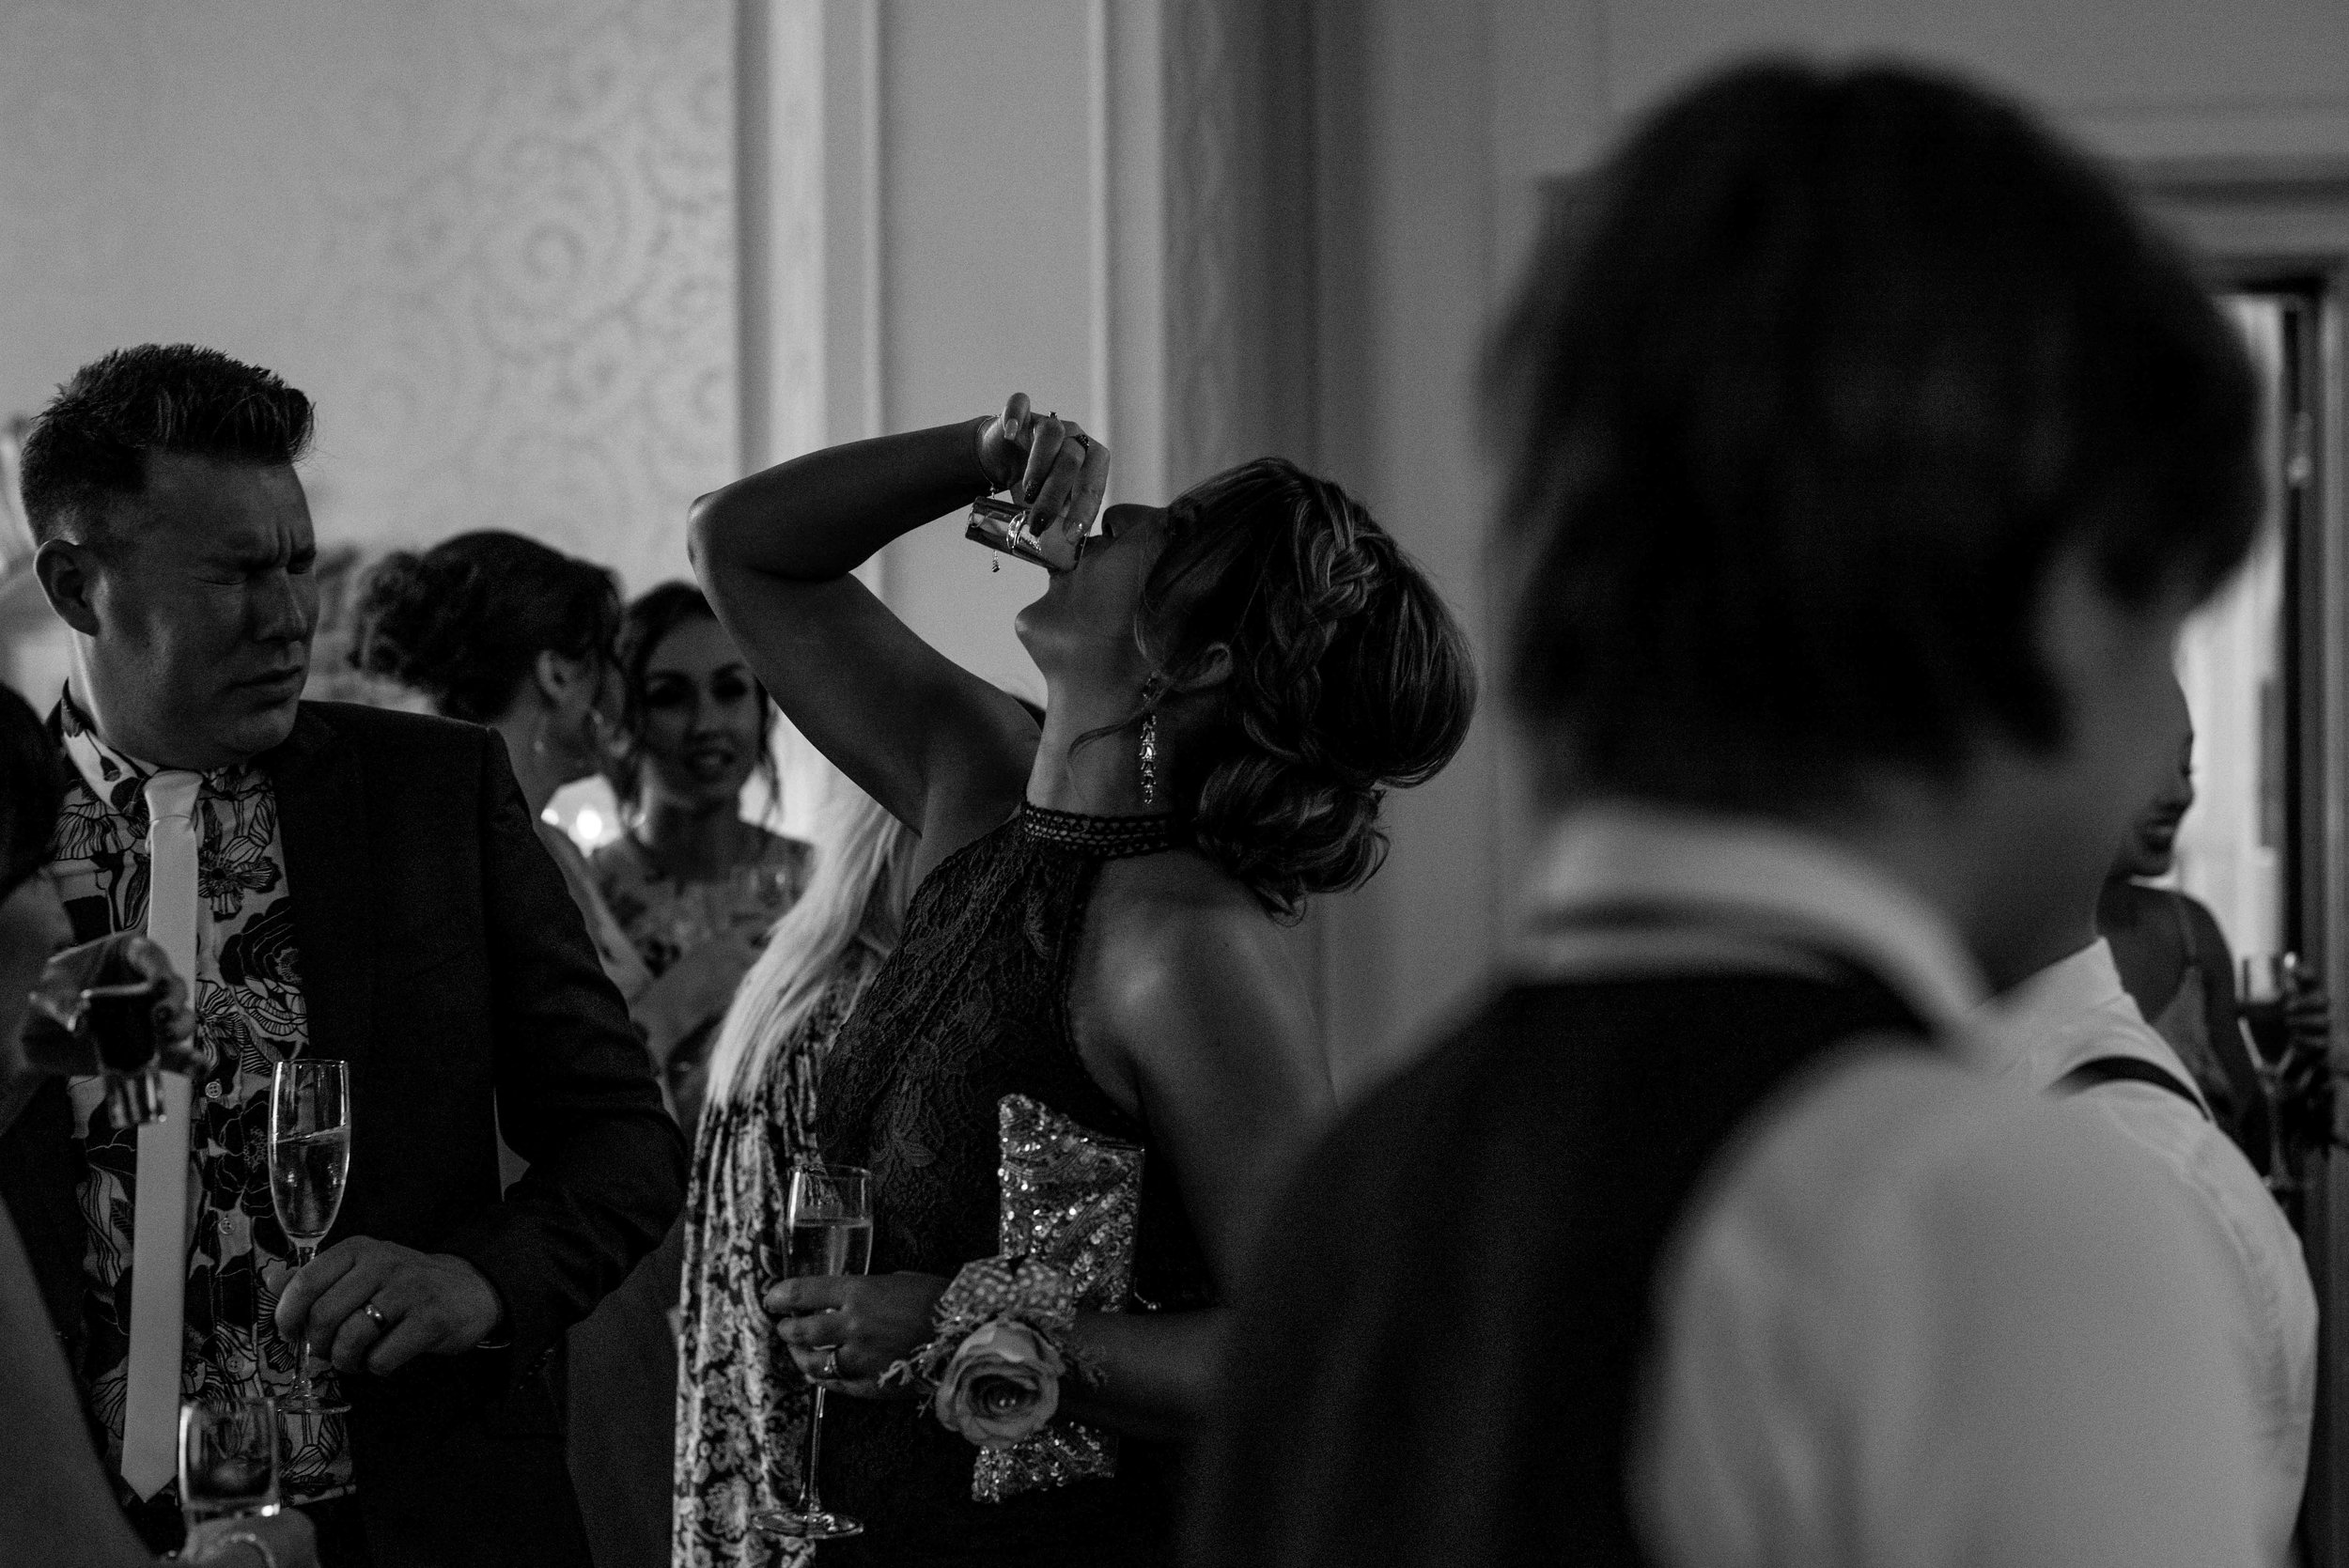 A wedding guest puts her head back to swallow a vodka shot